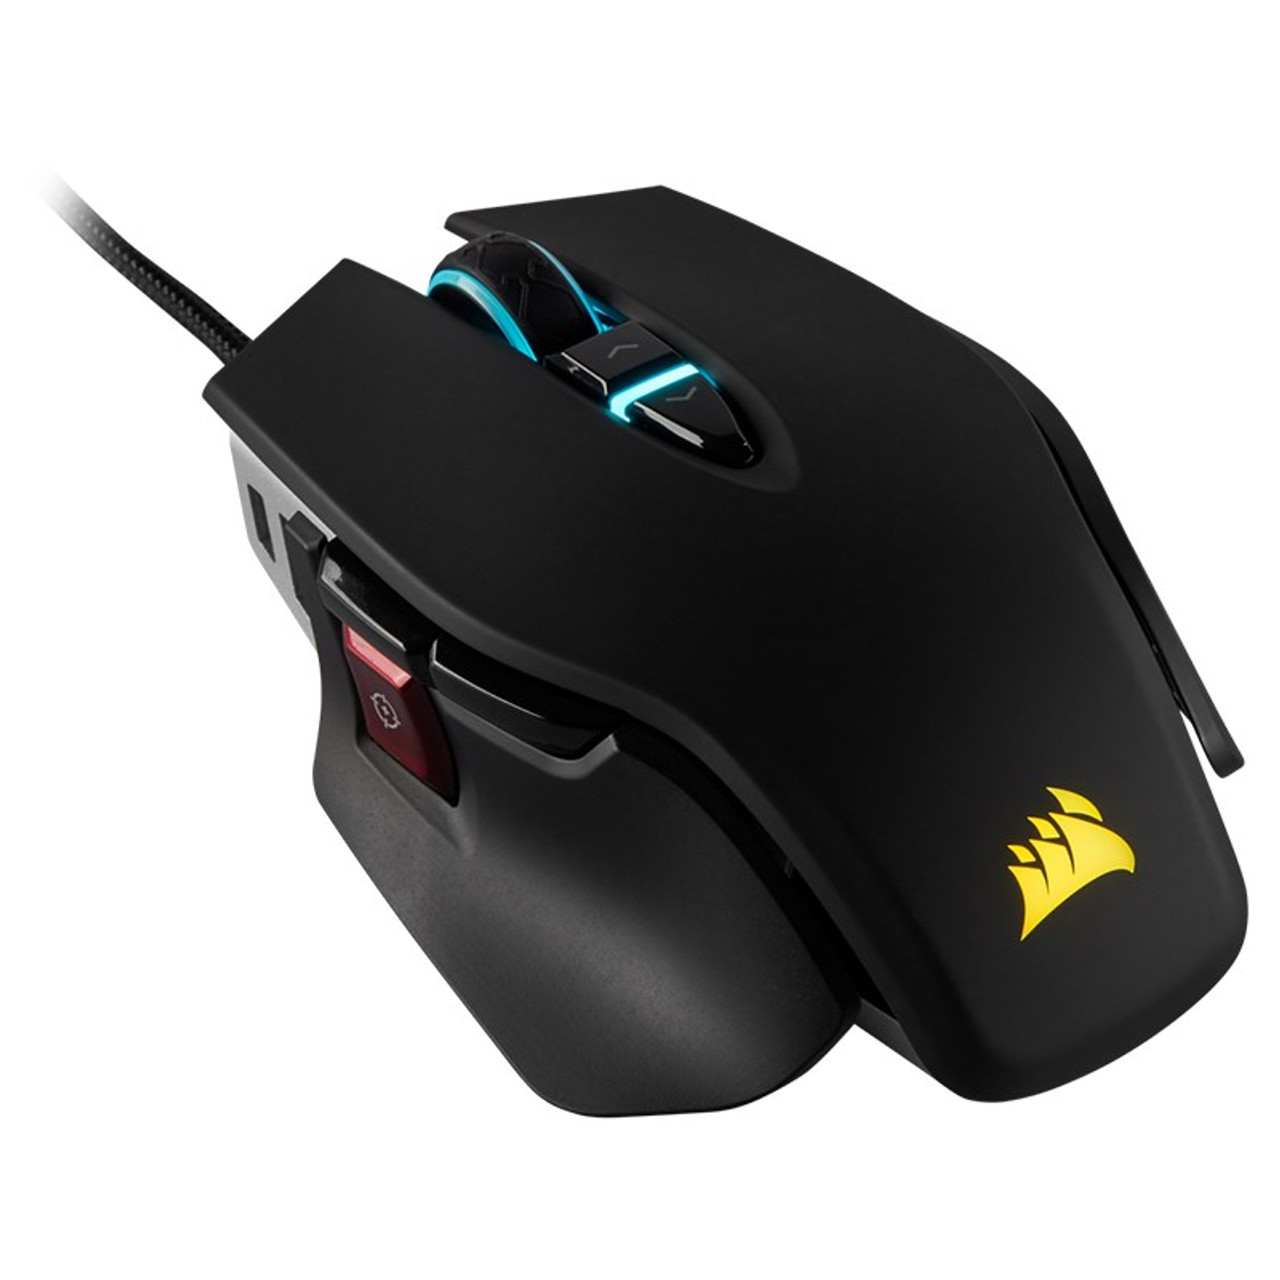 Product image for Corsair M65 RGB ELITE FPS Tunable Optical Gaming Mouse - Black | CX Computer Superstore